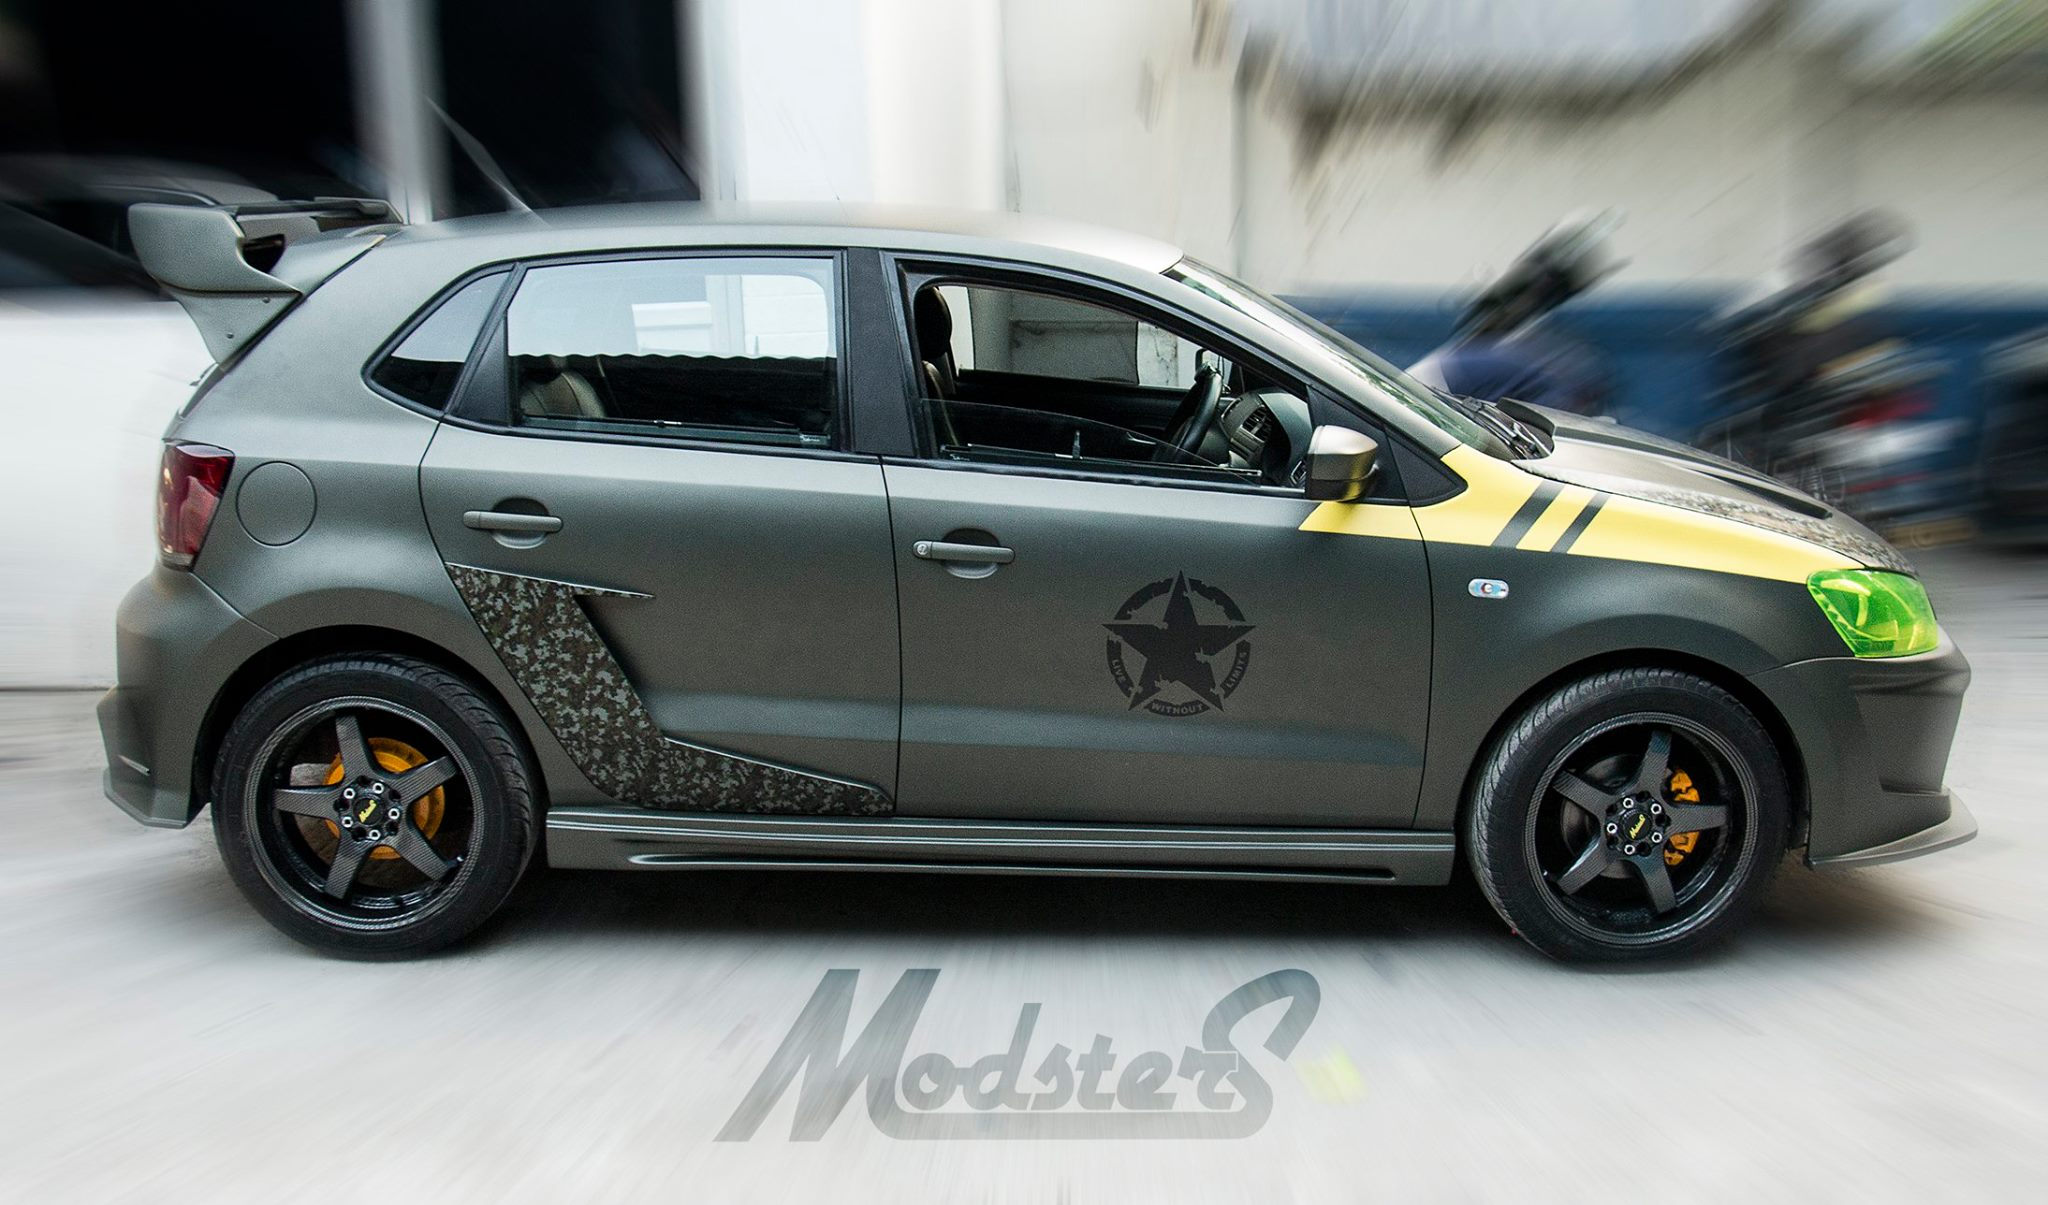 Vw Polo Tuning Combines Fake Carbon With Drum Brakes And Four Exhausts Autoevolution